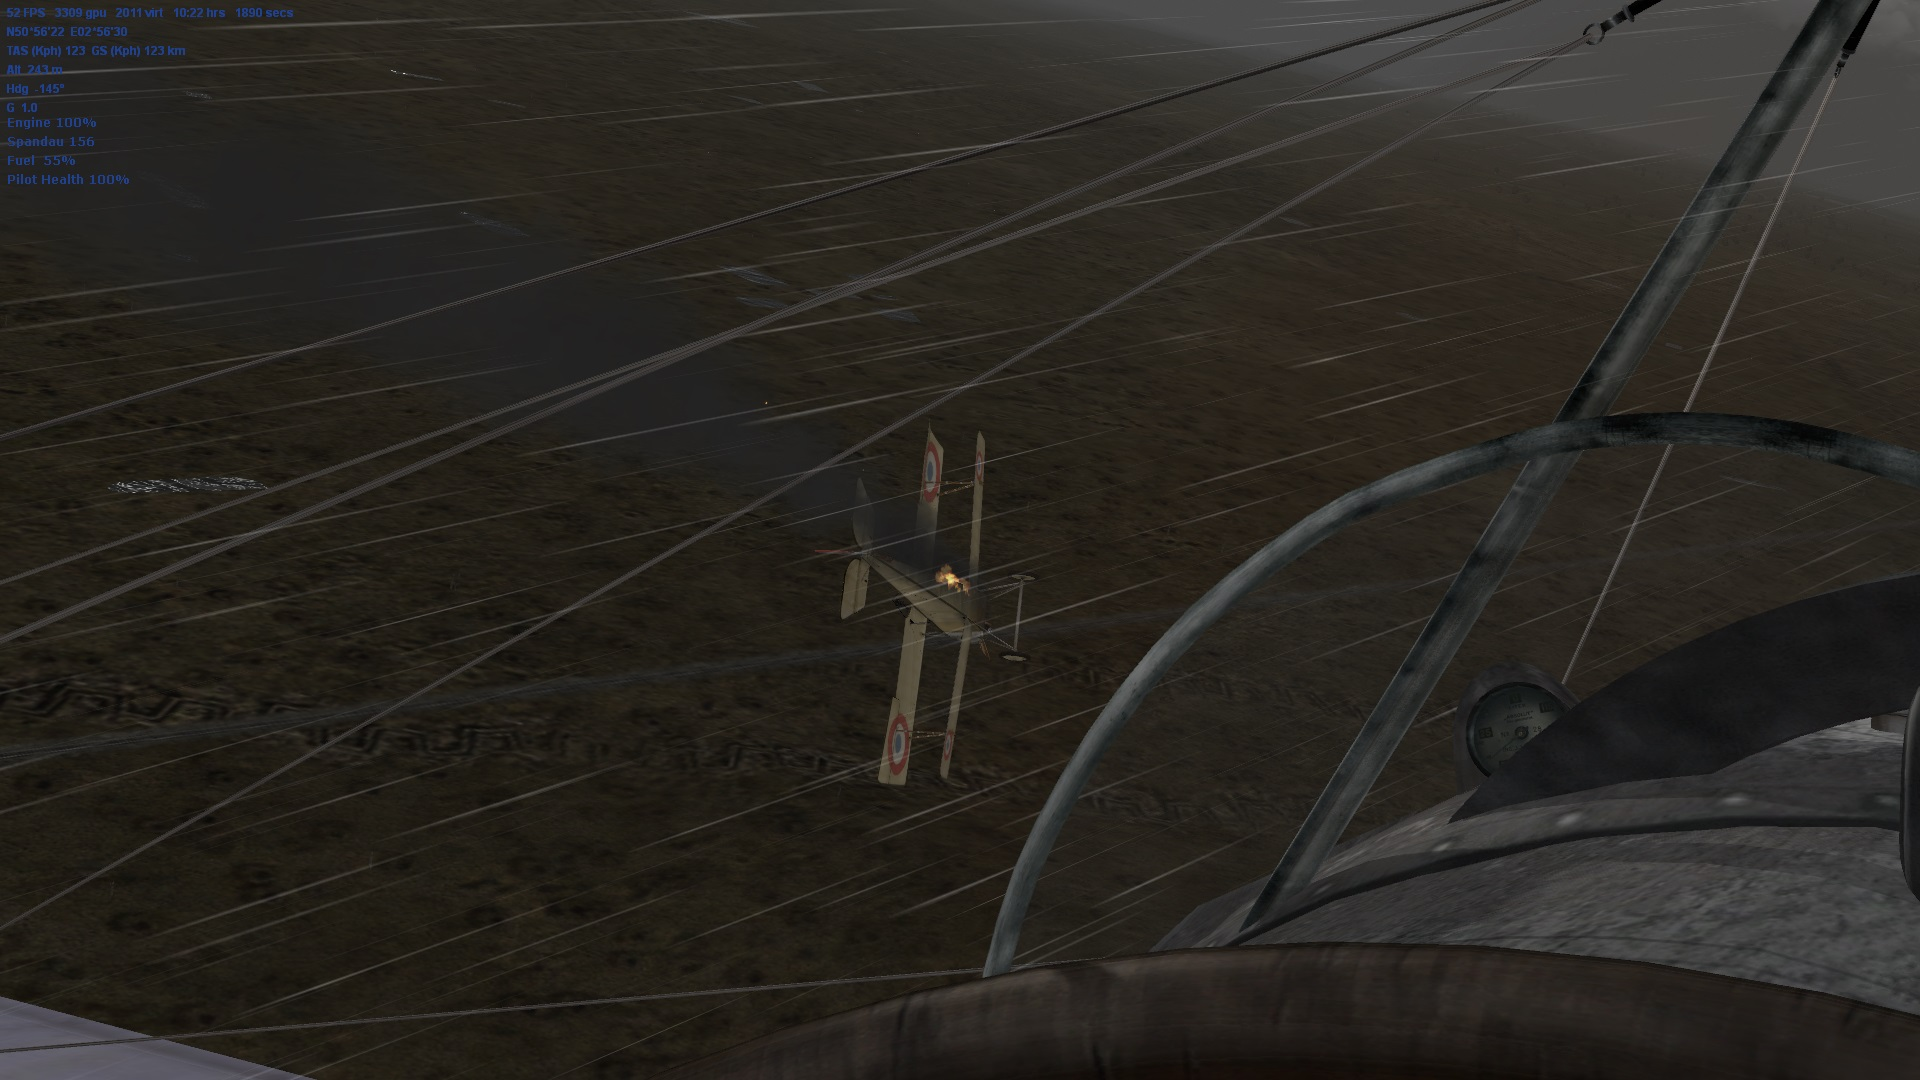 goodsmoking.jpg